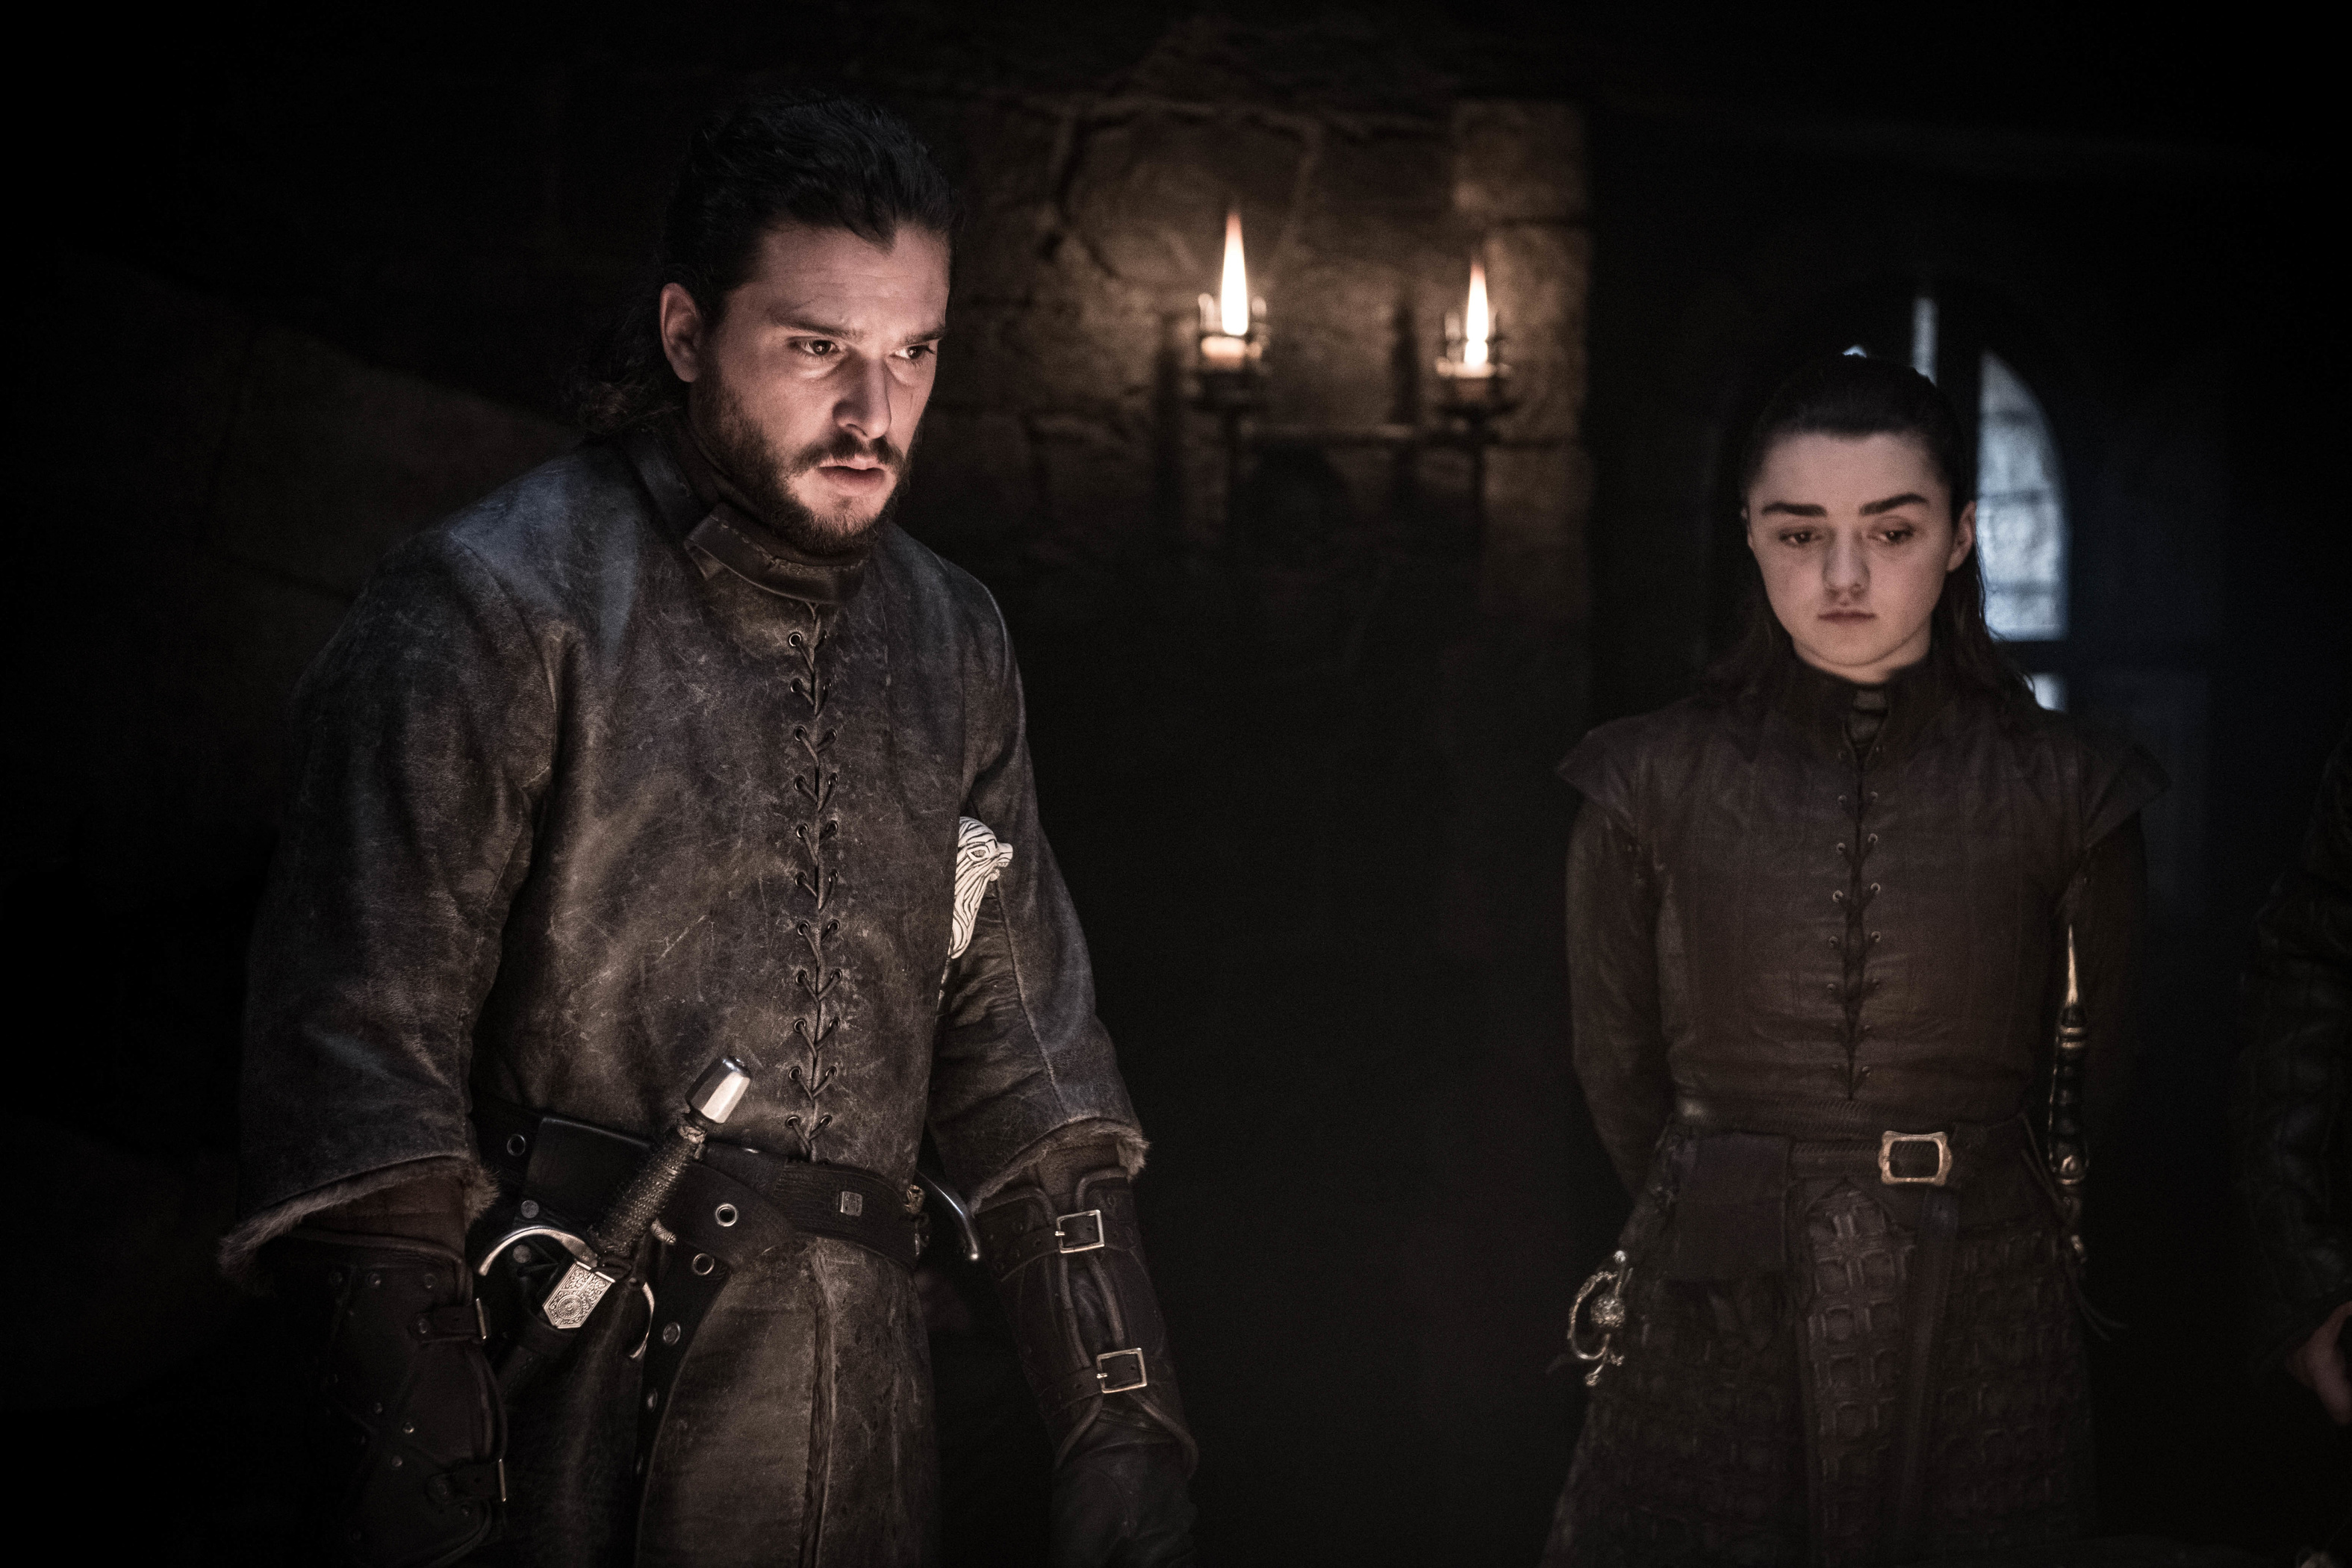 Game of Thrones episode 2's opening credits hid a clue about the Battle of Winterfell